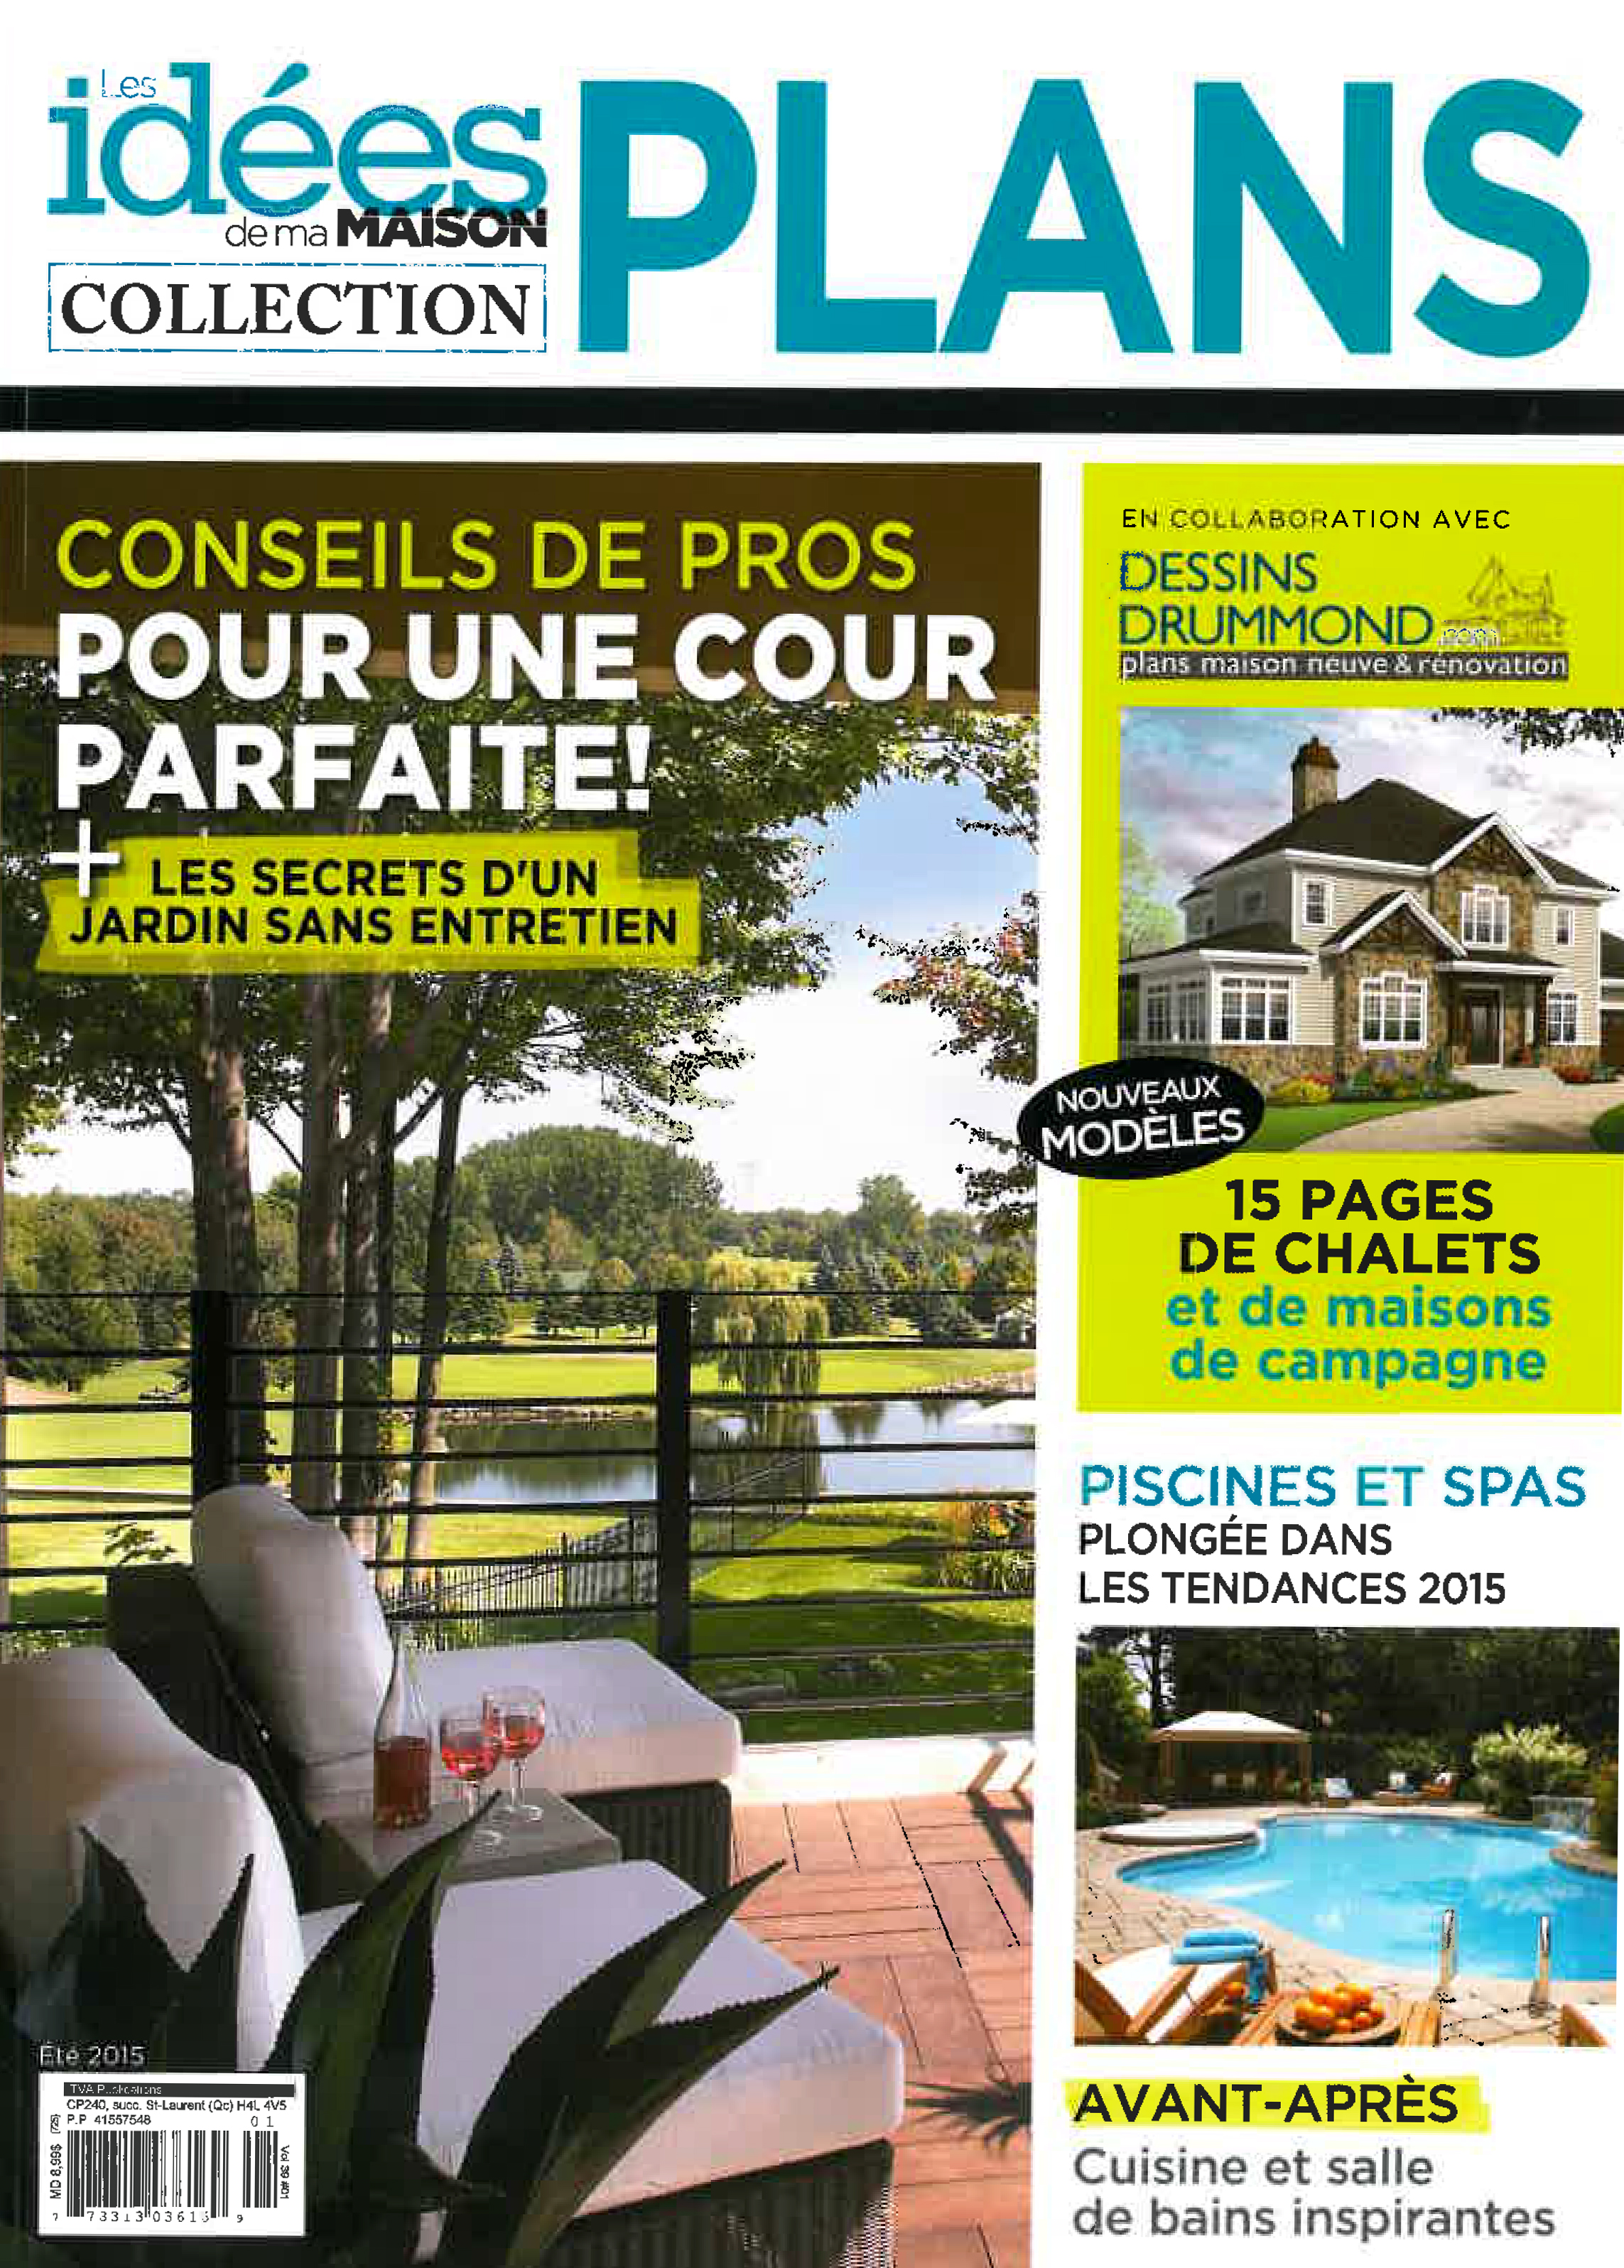 Id es de ma maison collection plan maison dessin drummond for Plans de dessins de porche